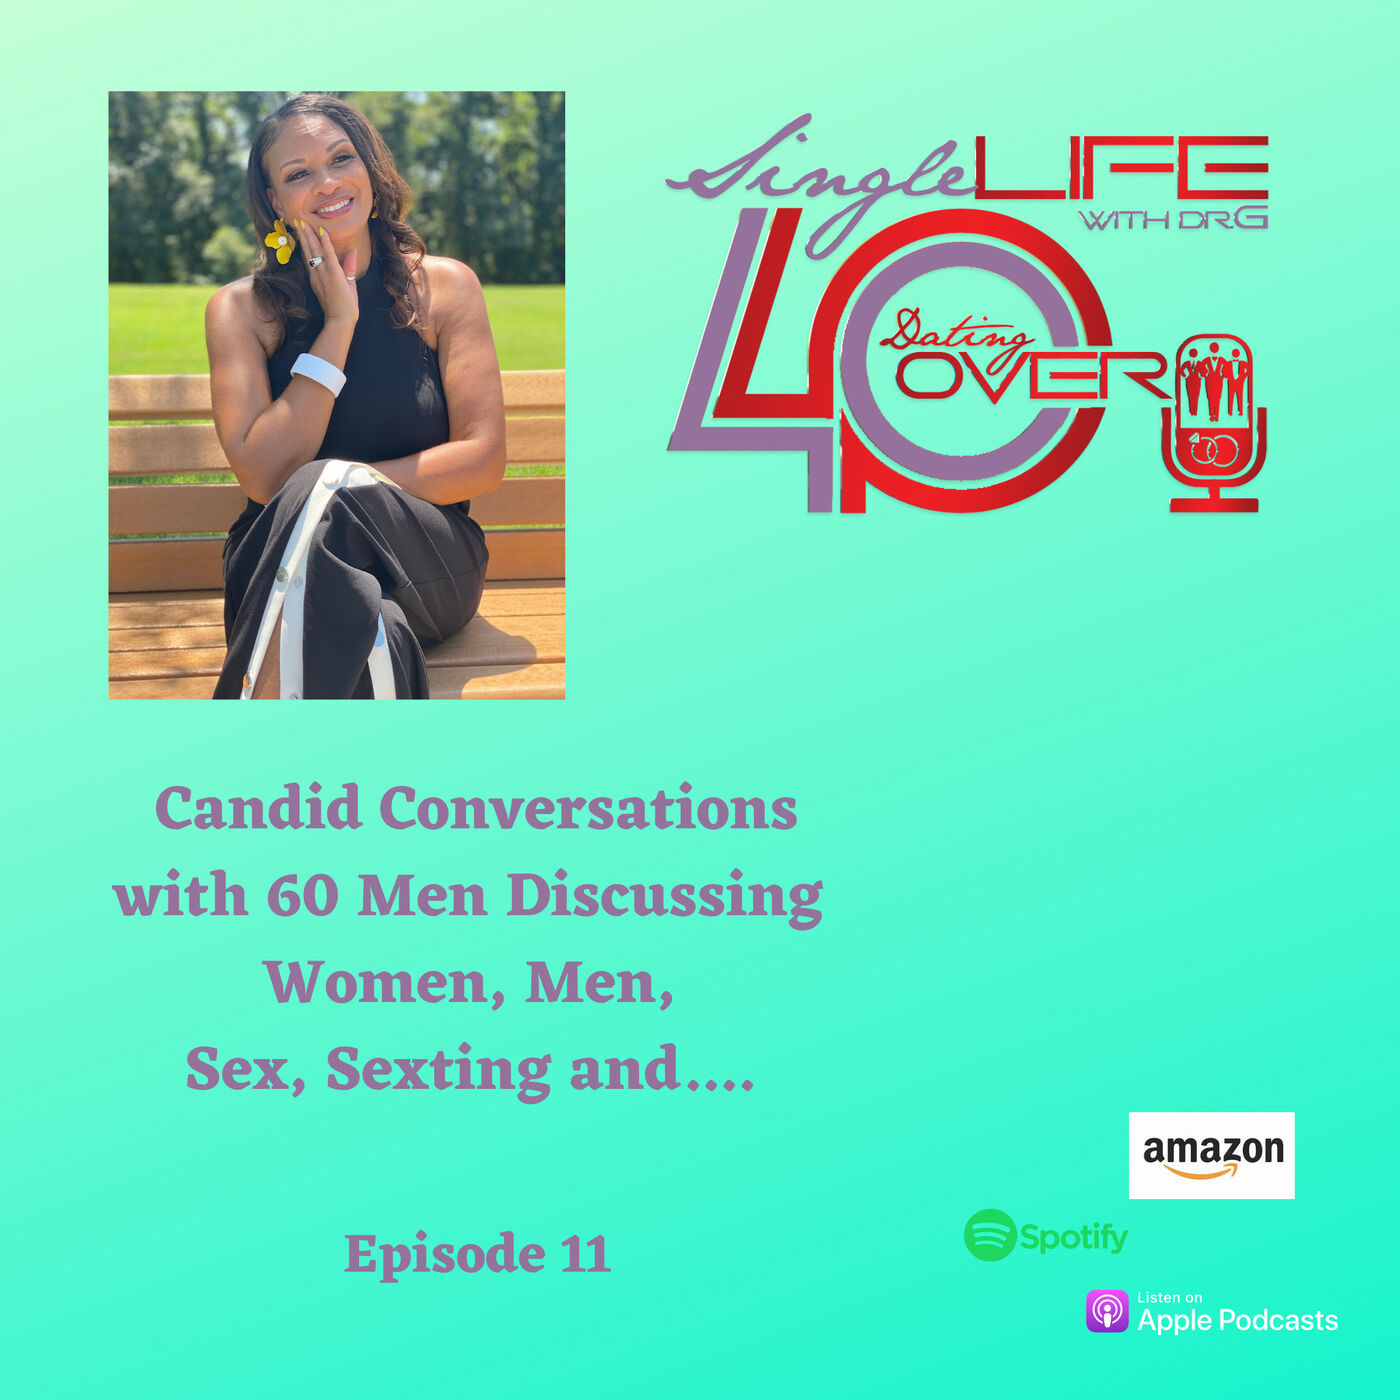 Candid Conversations with 60 Men Discussing Women, Men, Sex, Sexting and....